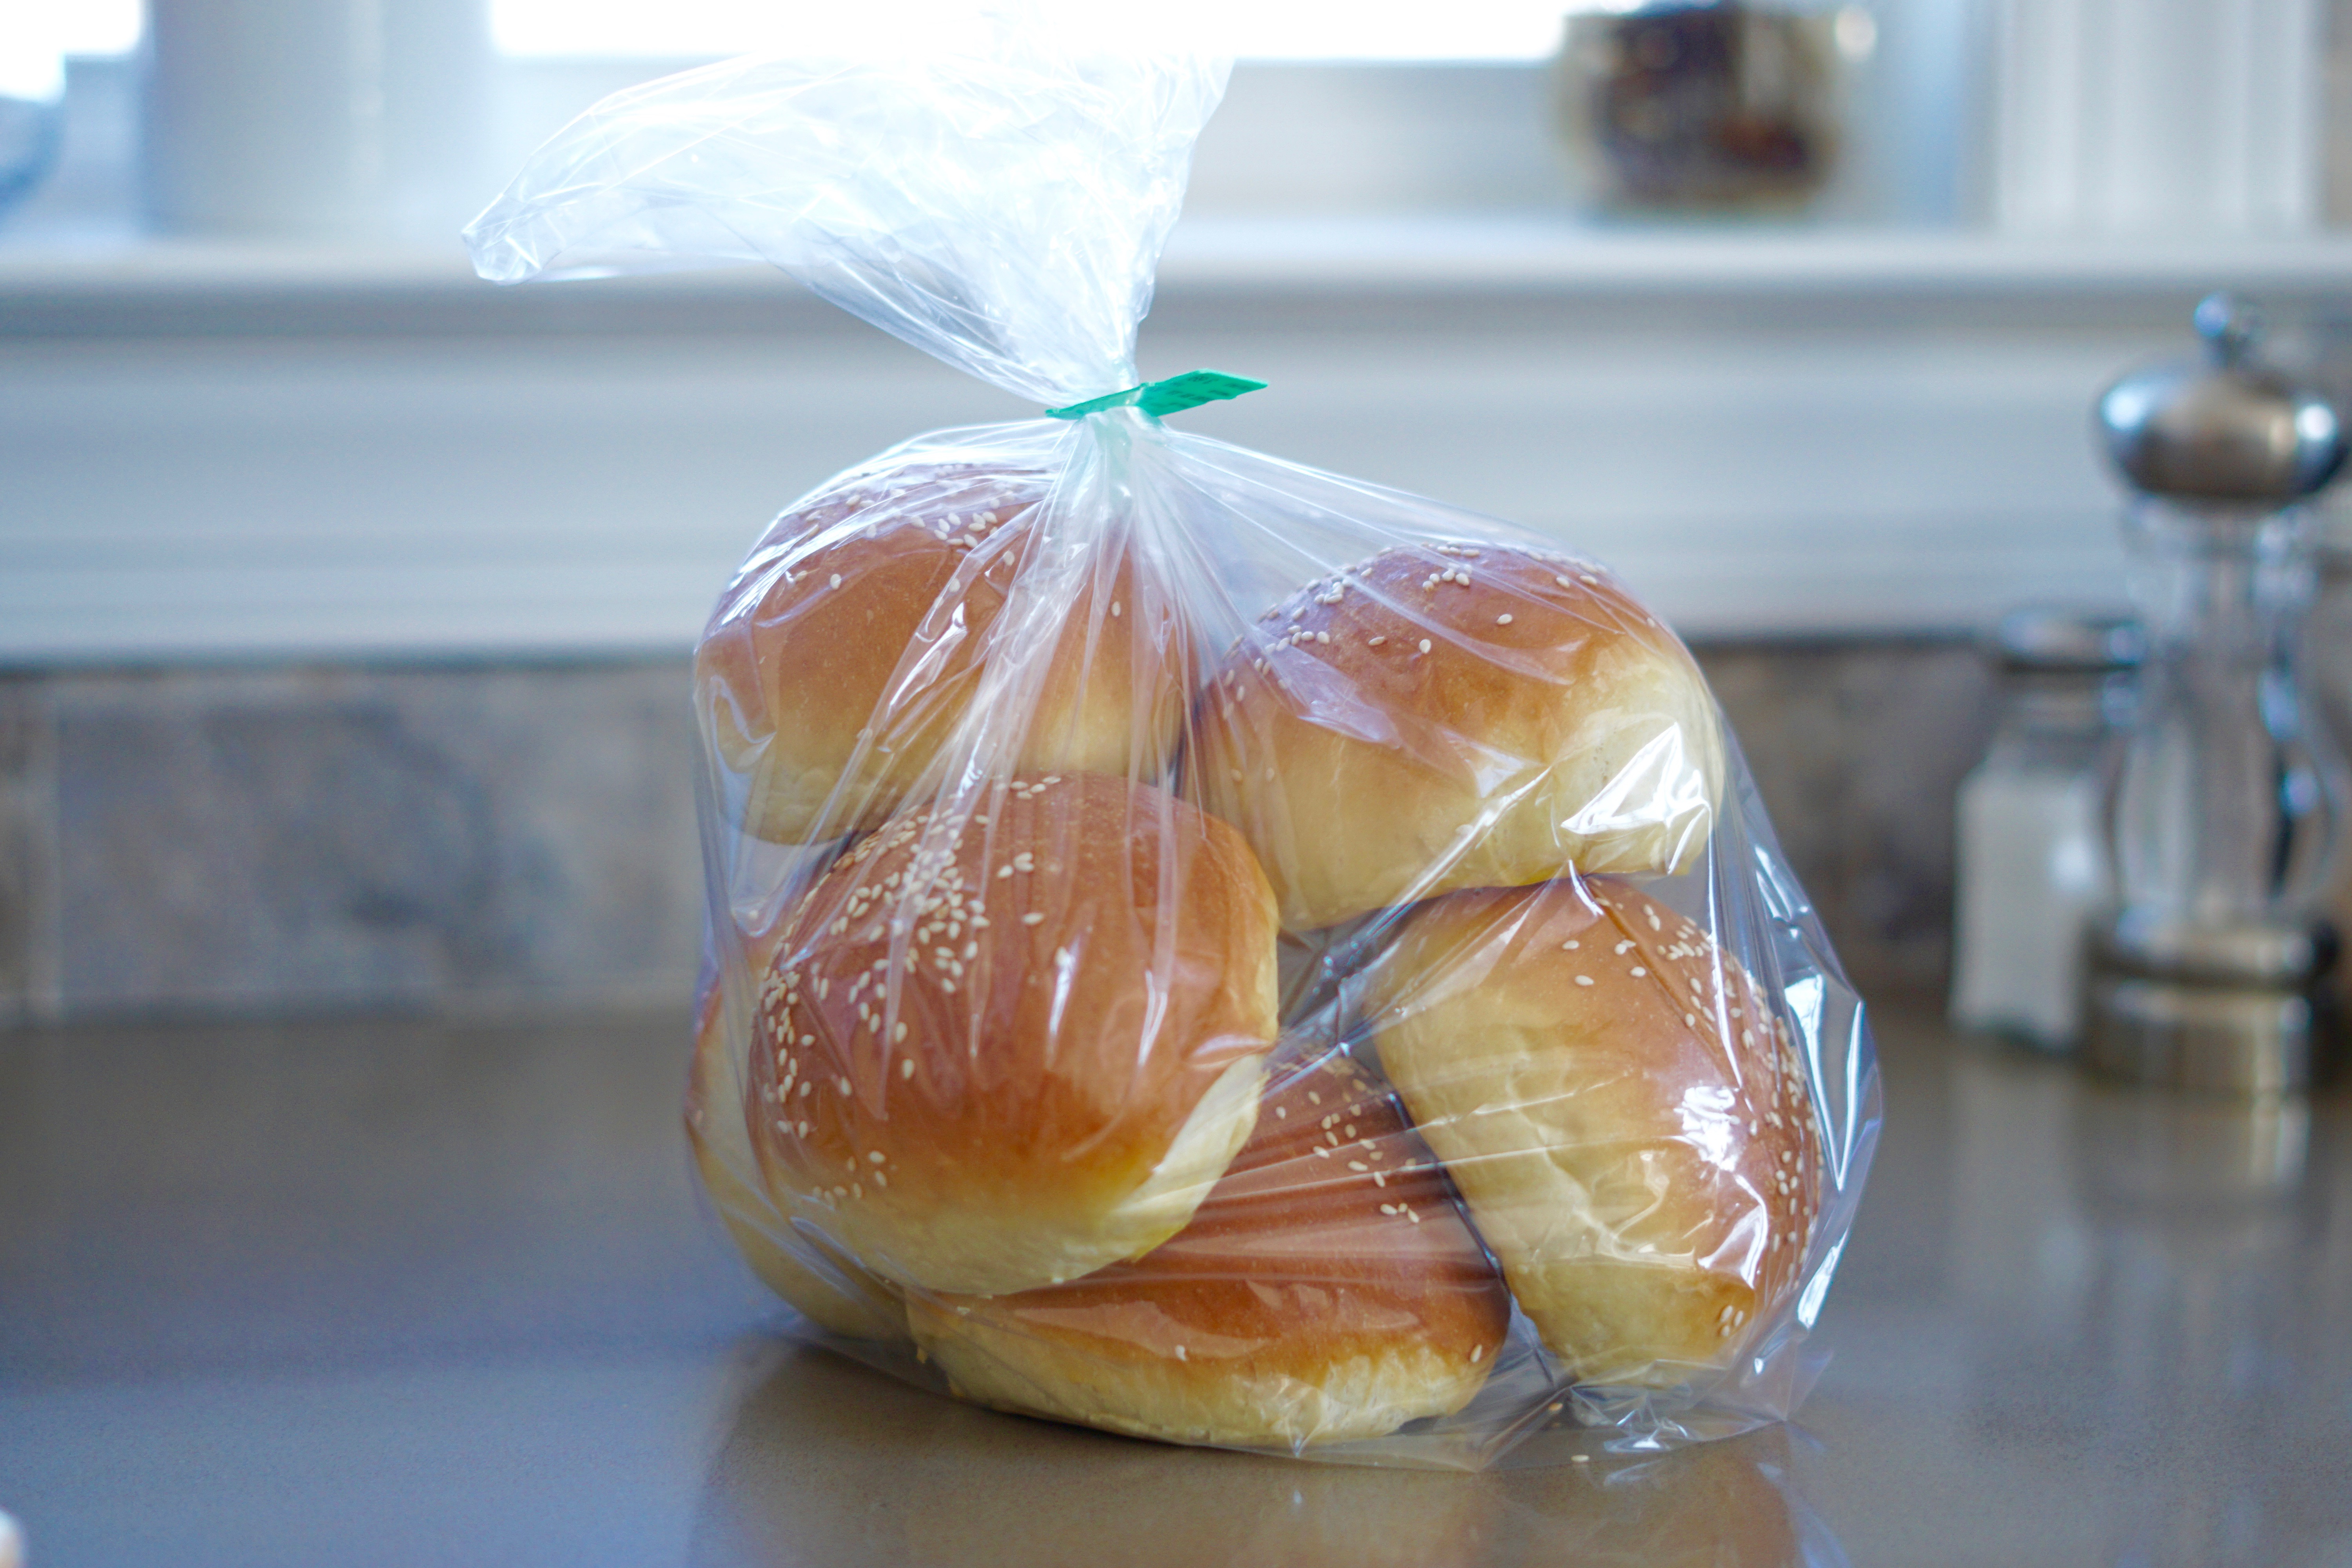 brioche style buns inside a plastic bag resting on a countertop